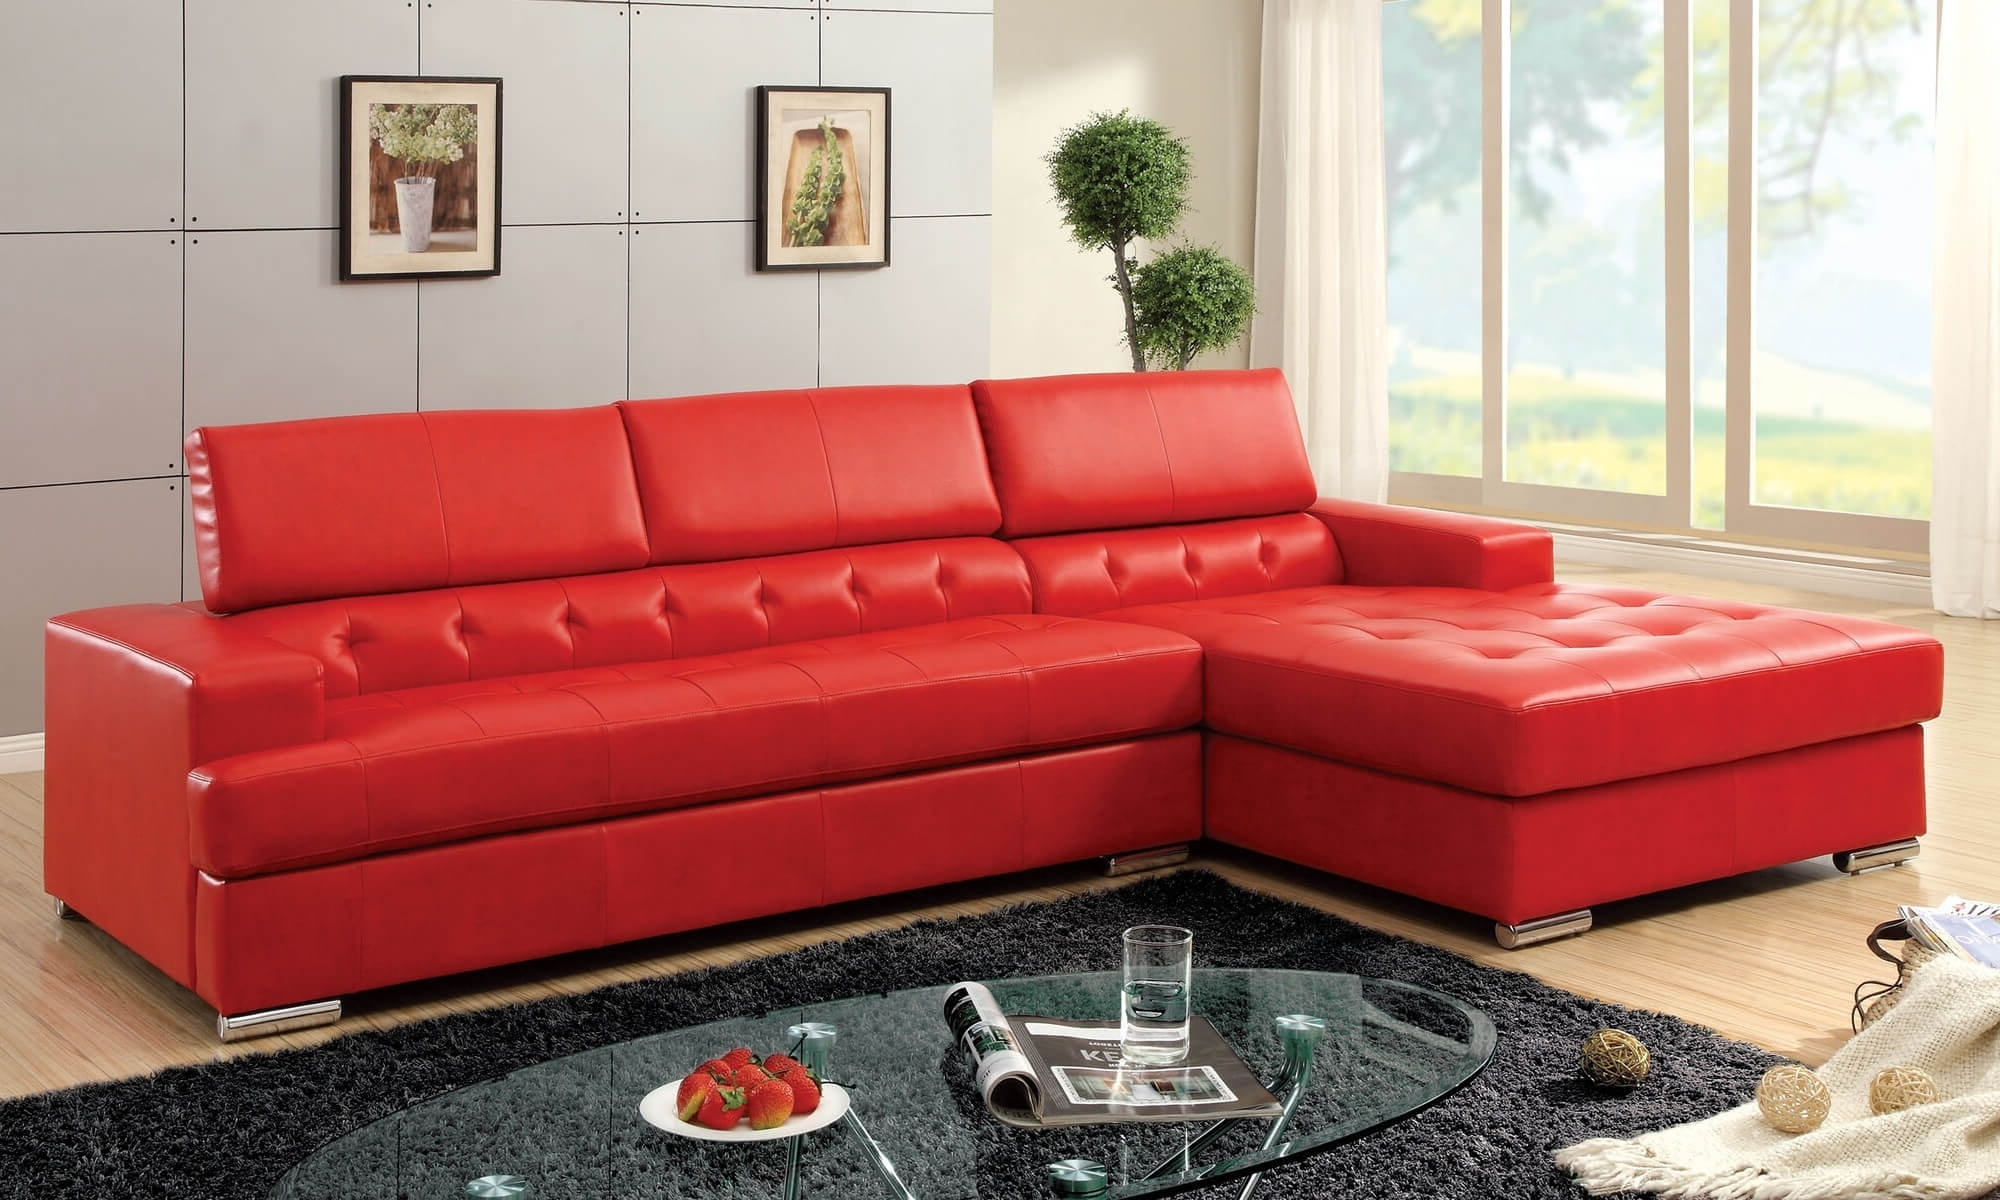 2017 Modern Red Leather Sectional Sofa • Leather Sofa Regarding Red Sectional Sofas With Ottoman (View 15 of 15)